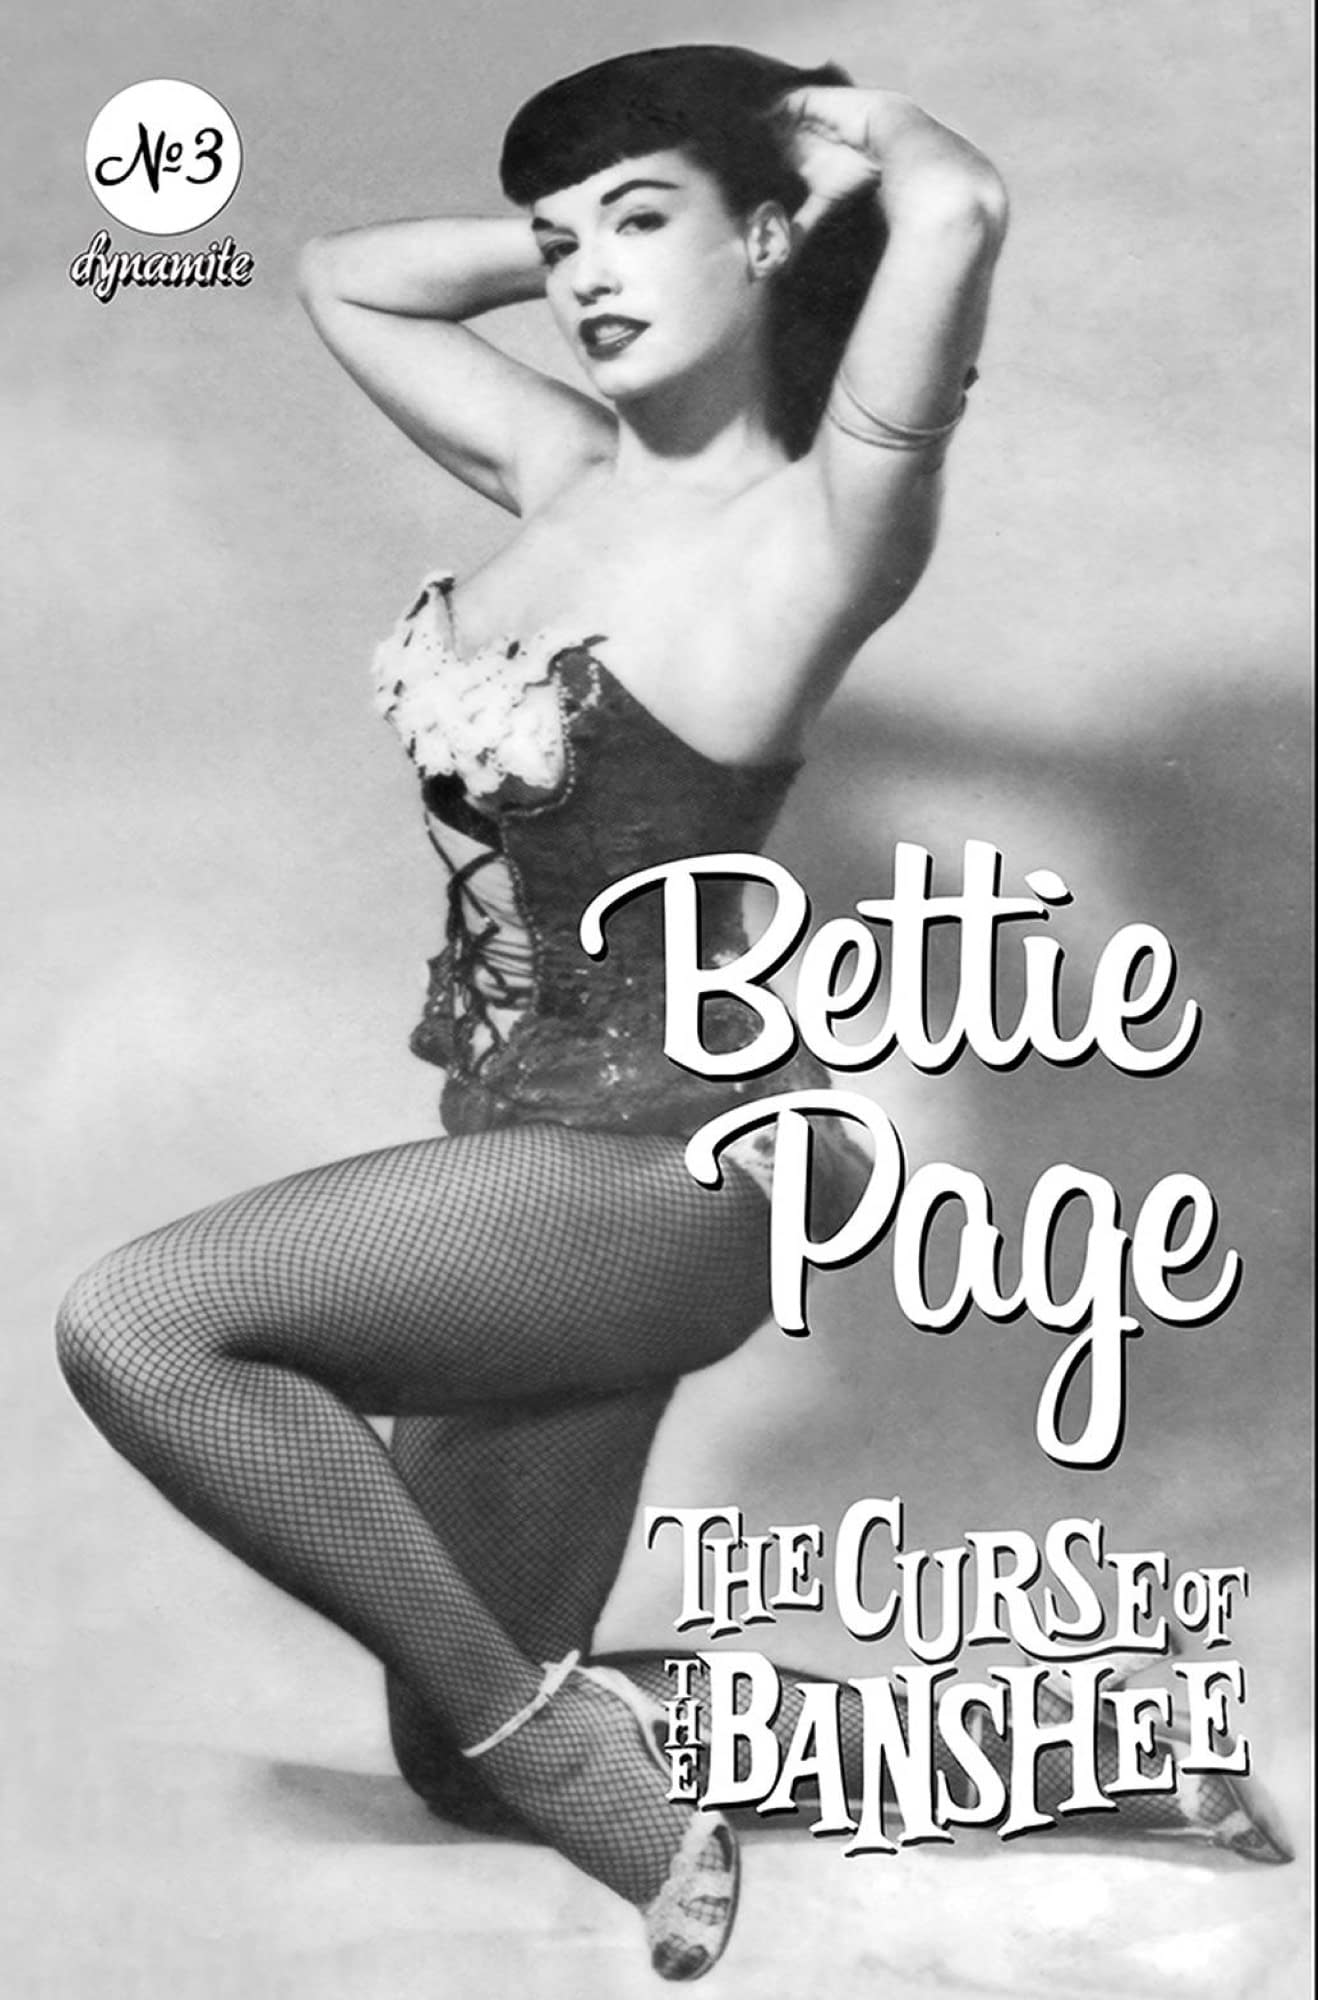 BETTIE PAGE & CURSE OF THE BANSHEE #3 CVR E BETTIE PAGE PIN